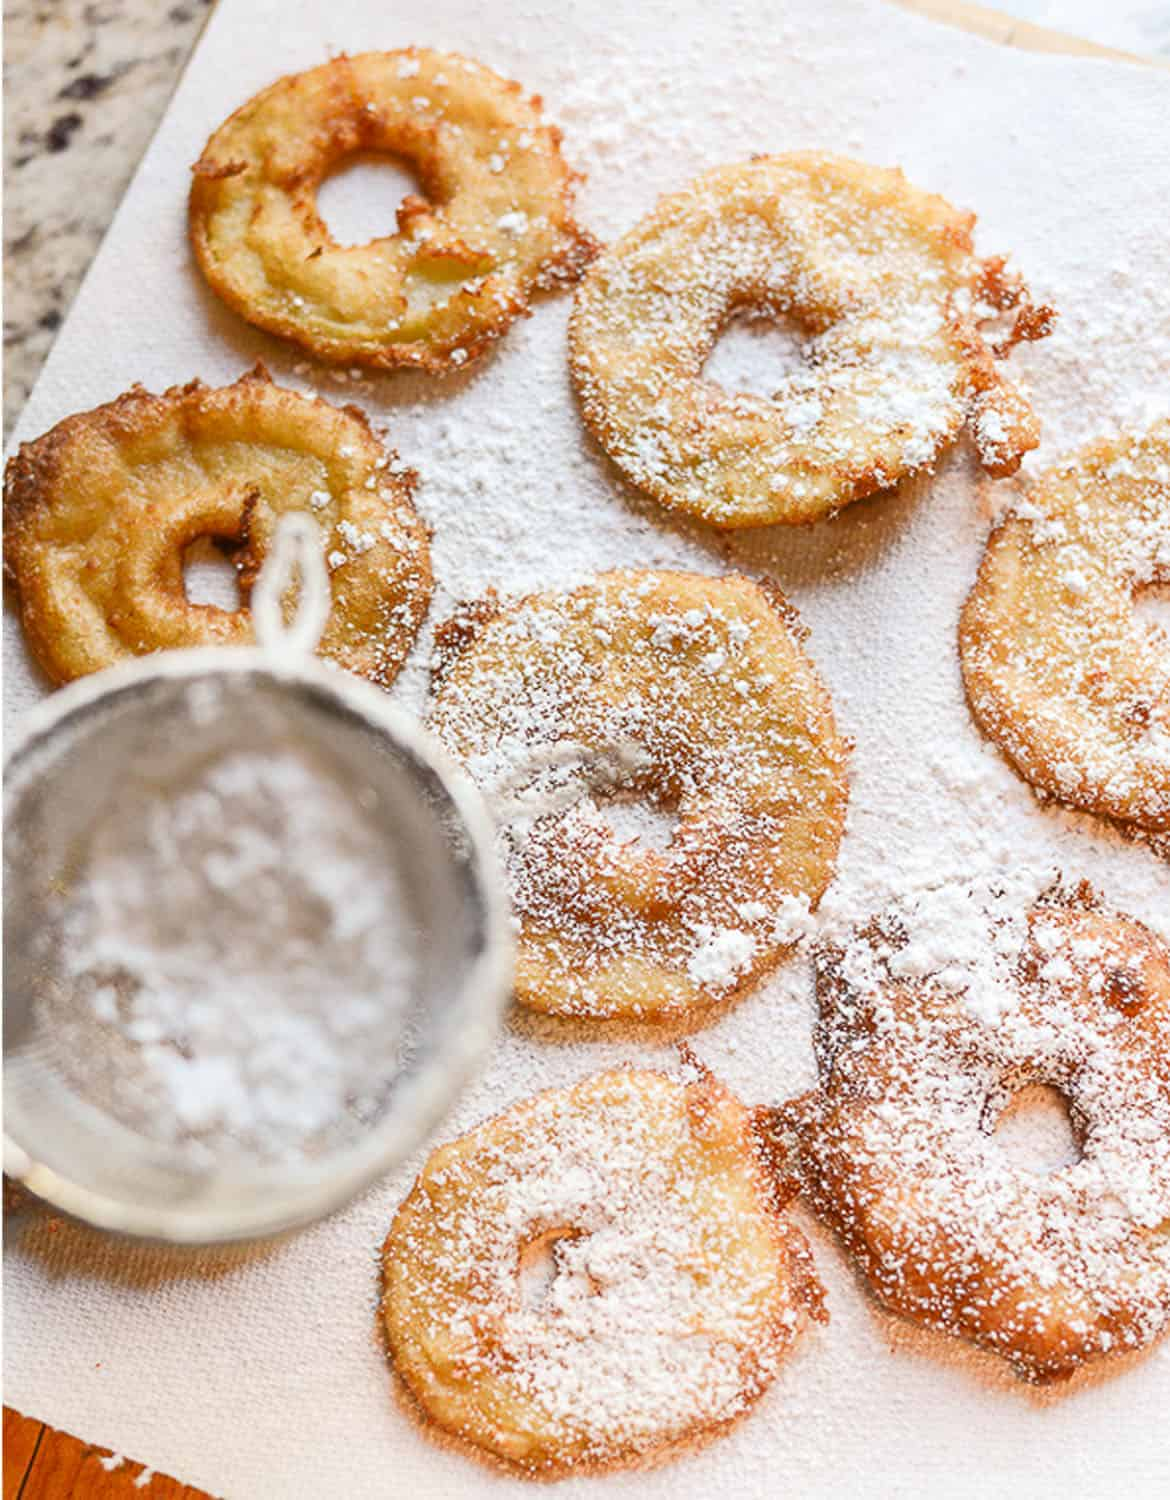 WHAT TO DO WITH APPLES: AMAZING APPLE FRITTER RINGS RECIPE FOR FALL by Tikkido